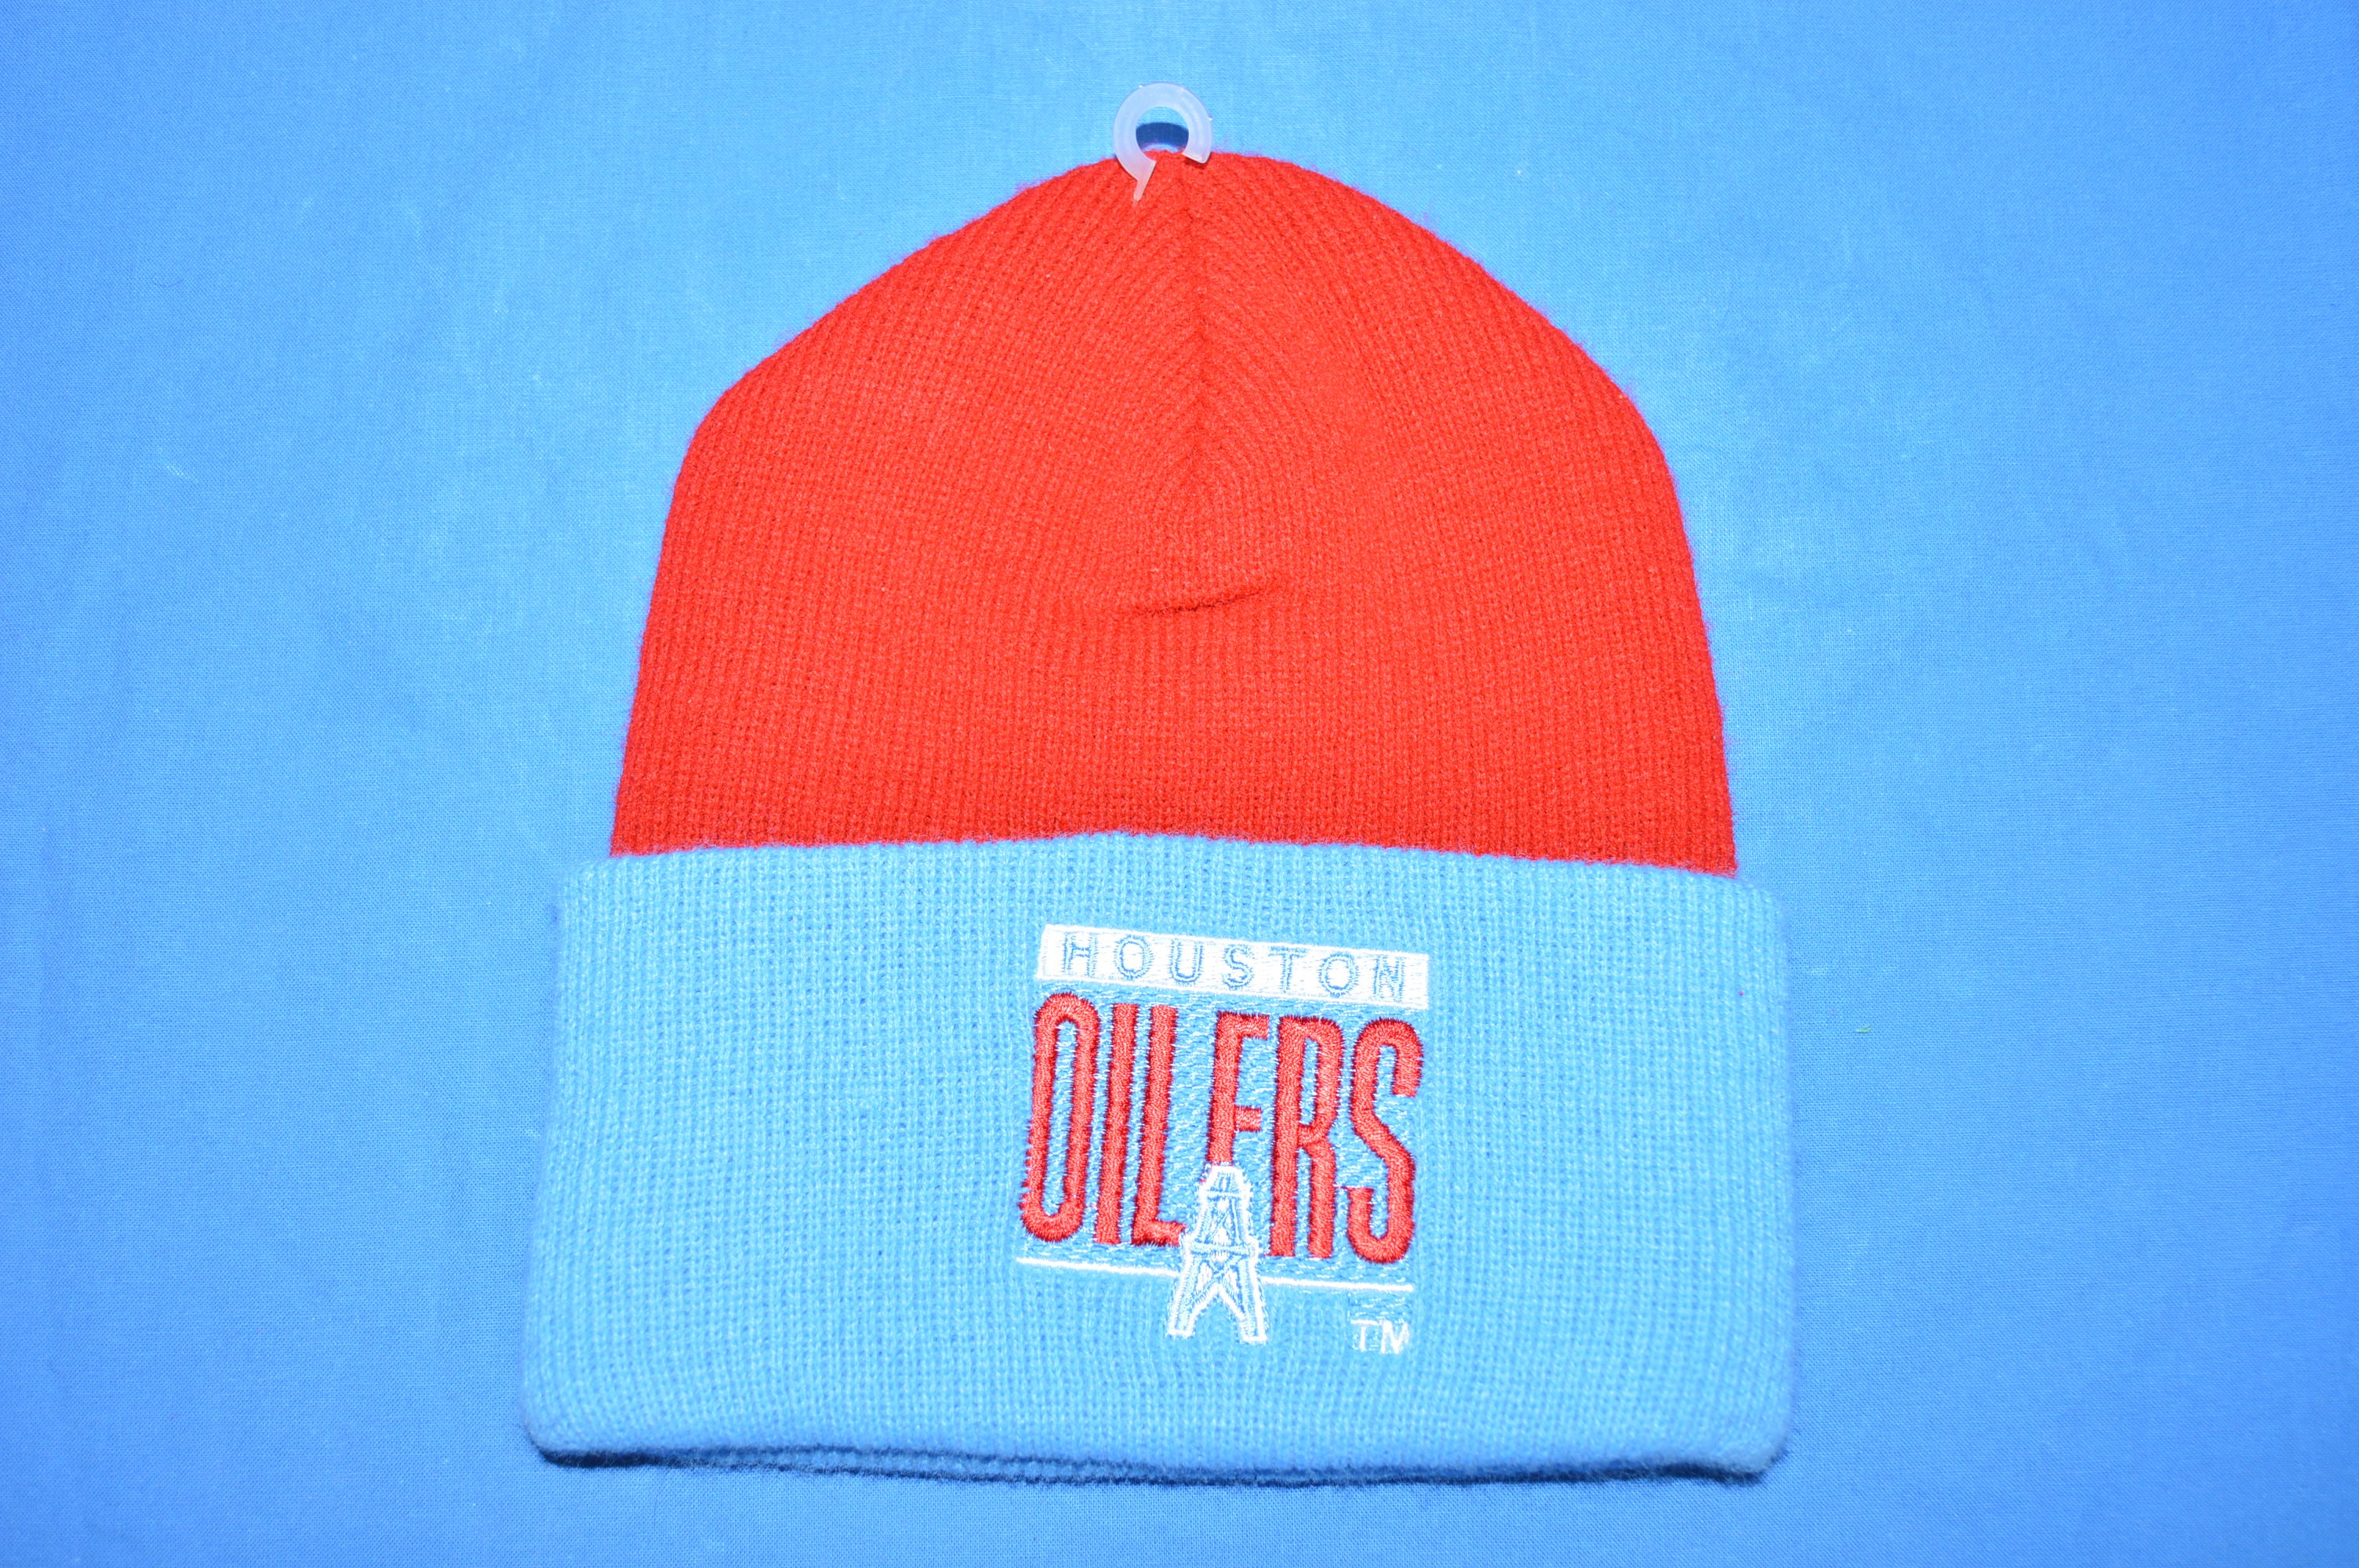 80s Huston Oilers NFL Football Winter Ski Hat - The Captains Vintage 65234ac4664